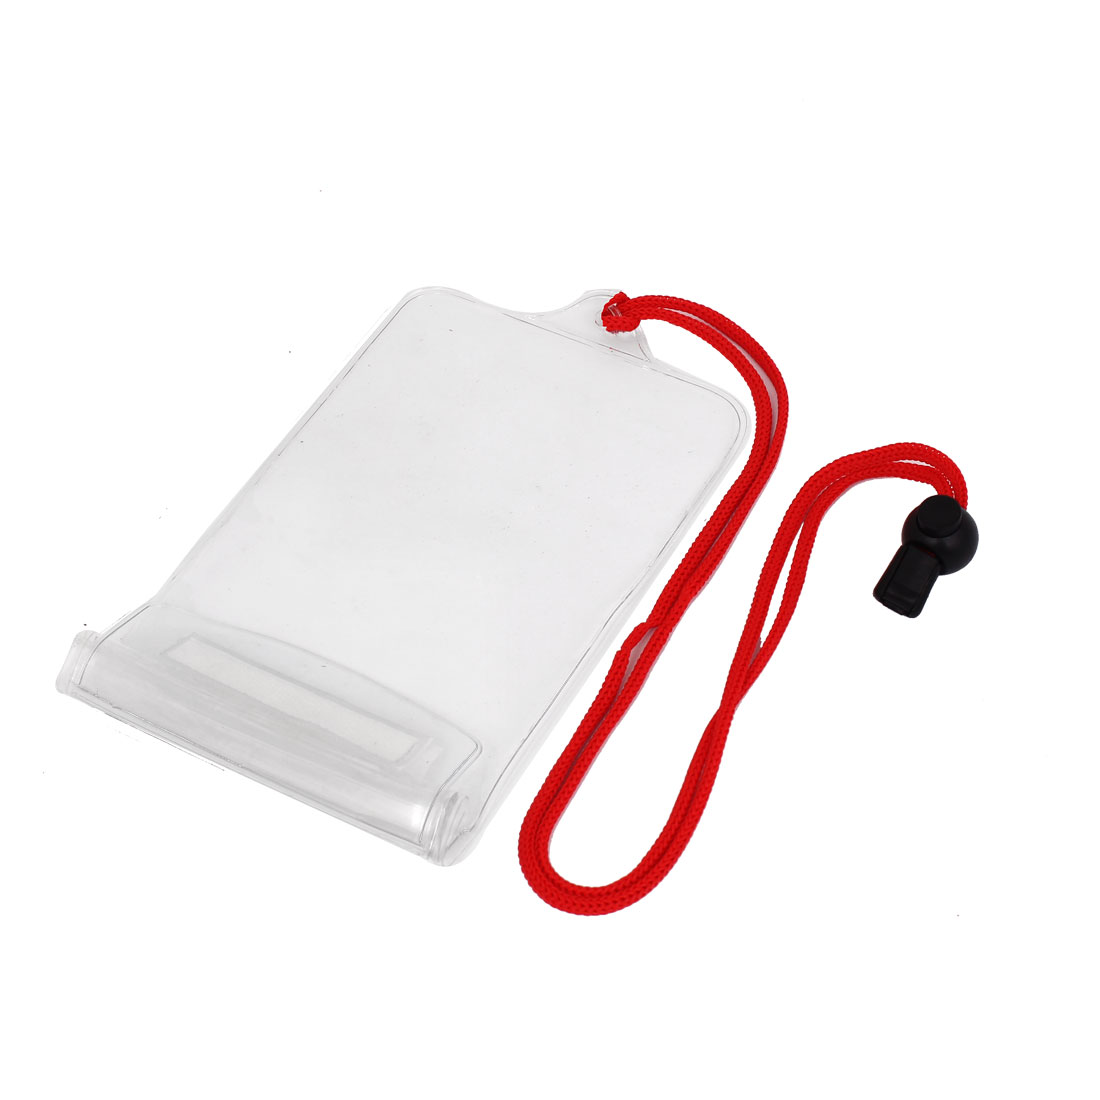 Waterproof Clear Pouch Bag Case for Cell Phone w Red Neck Strap